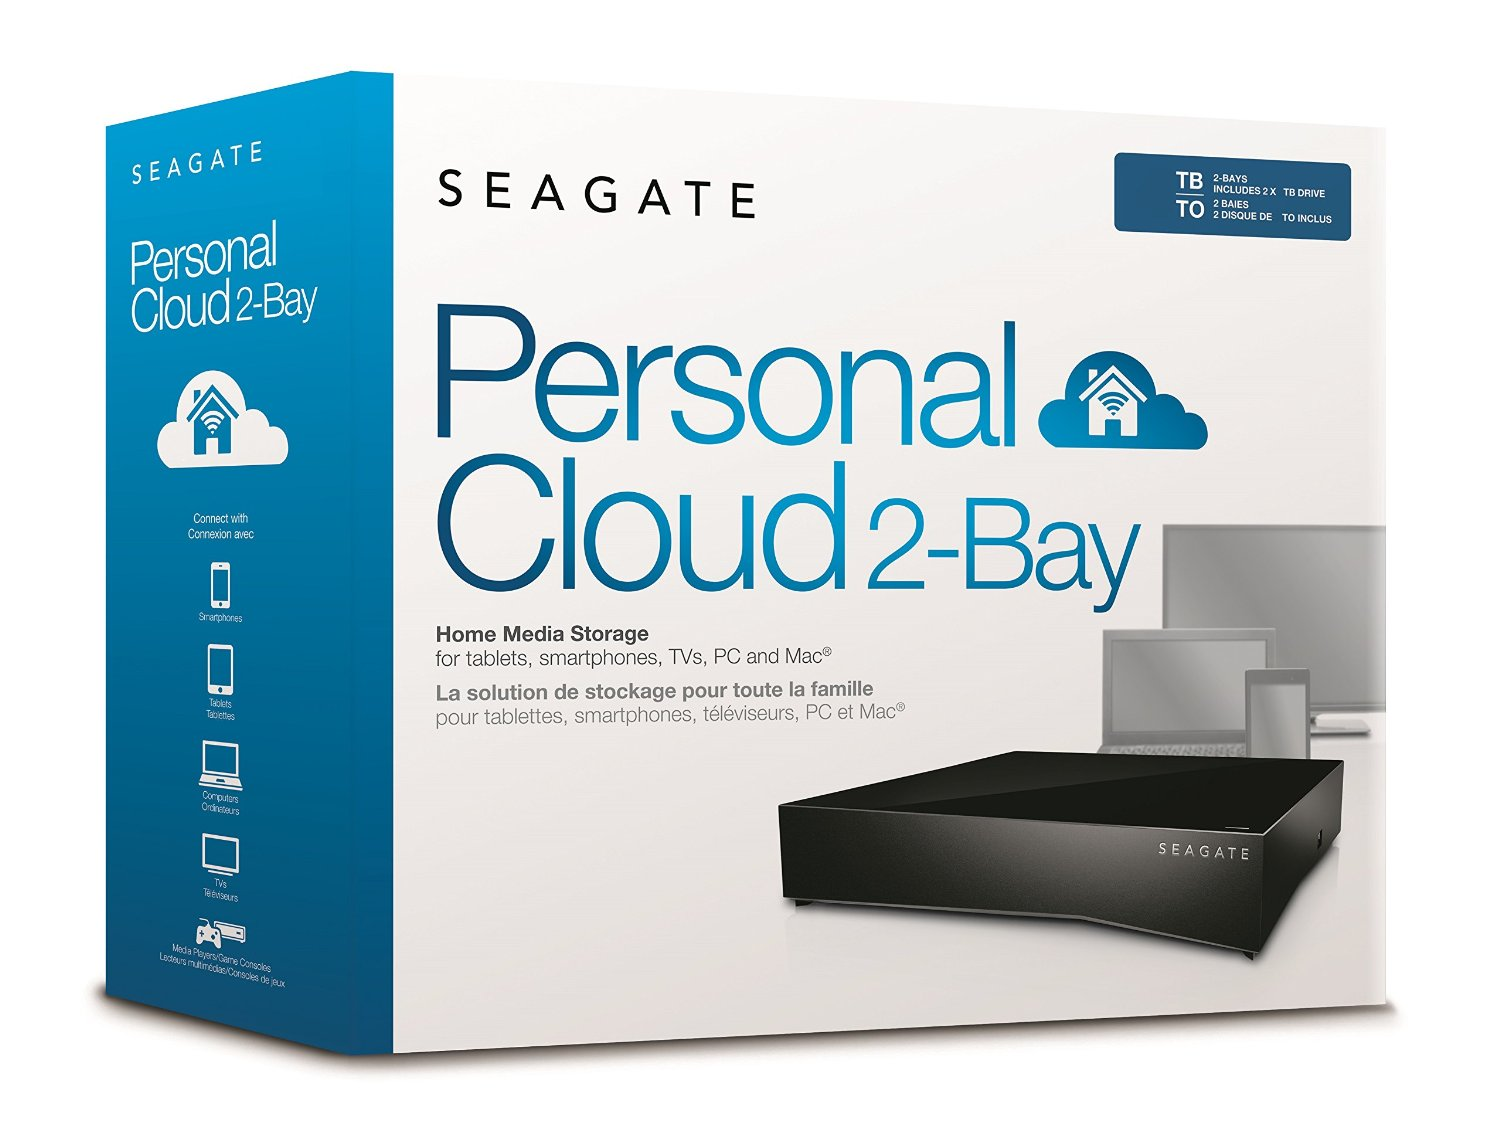 seagate personal cloud 2 bay home media storage devices